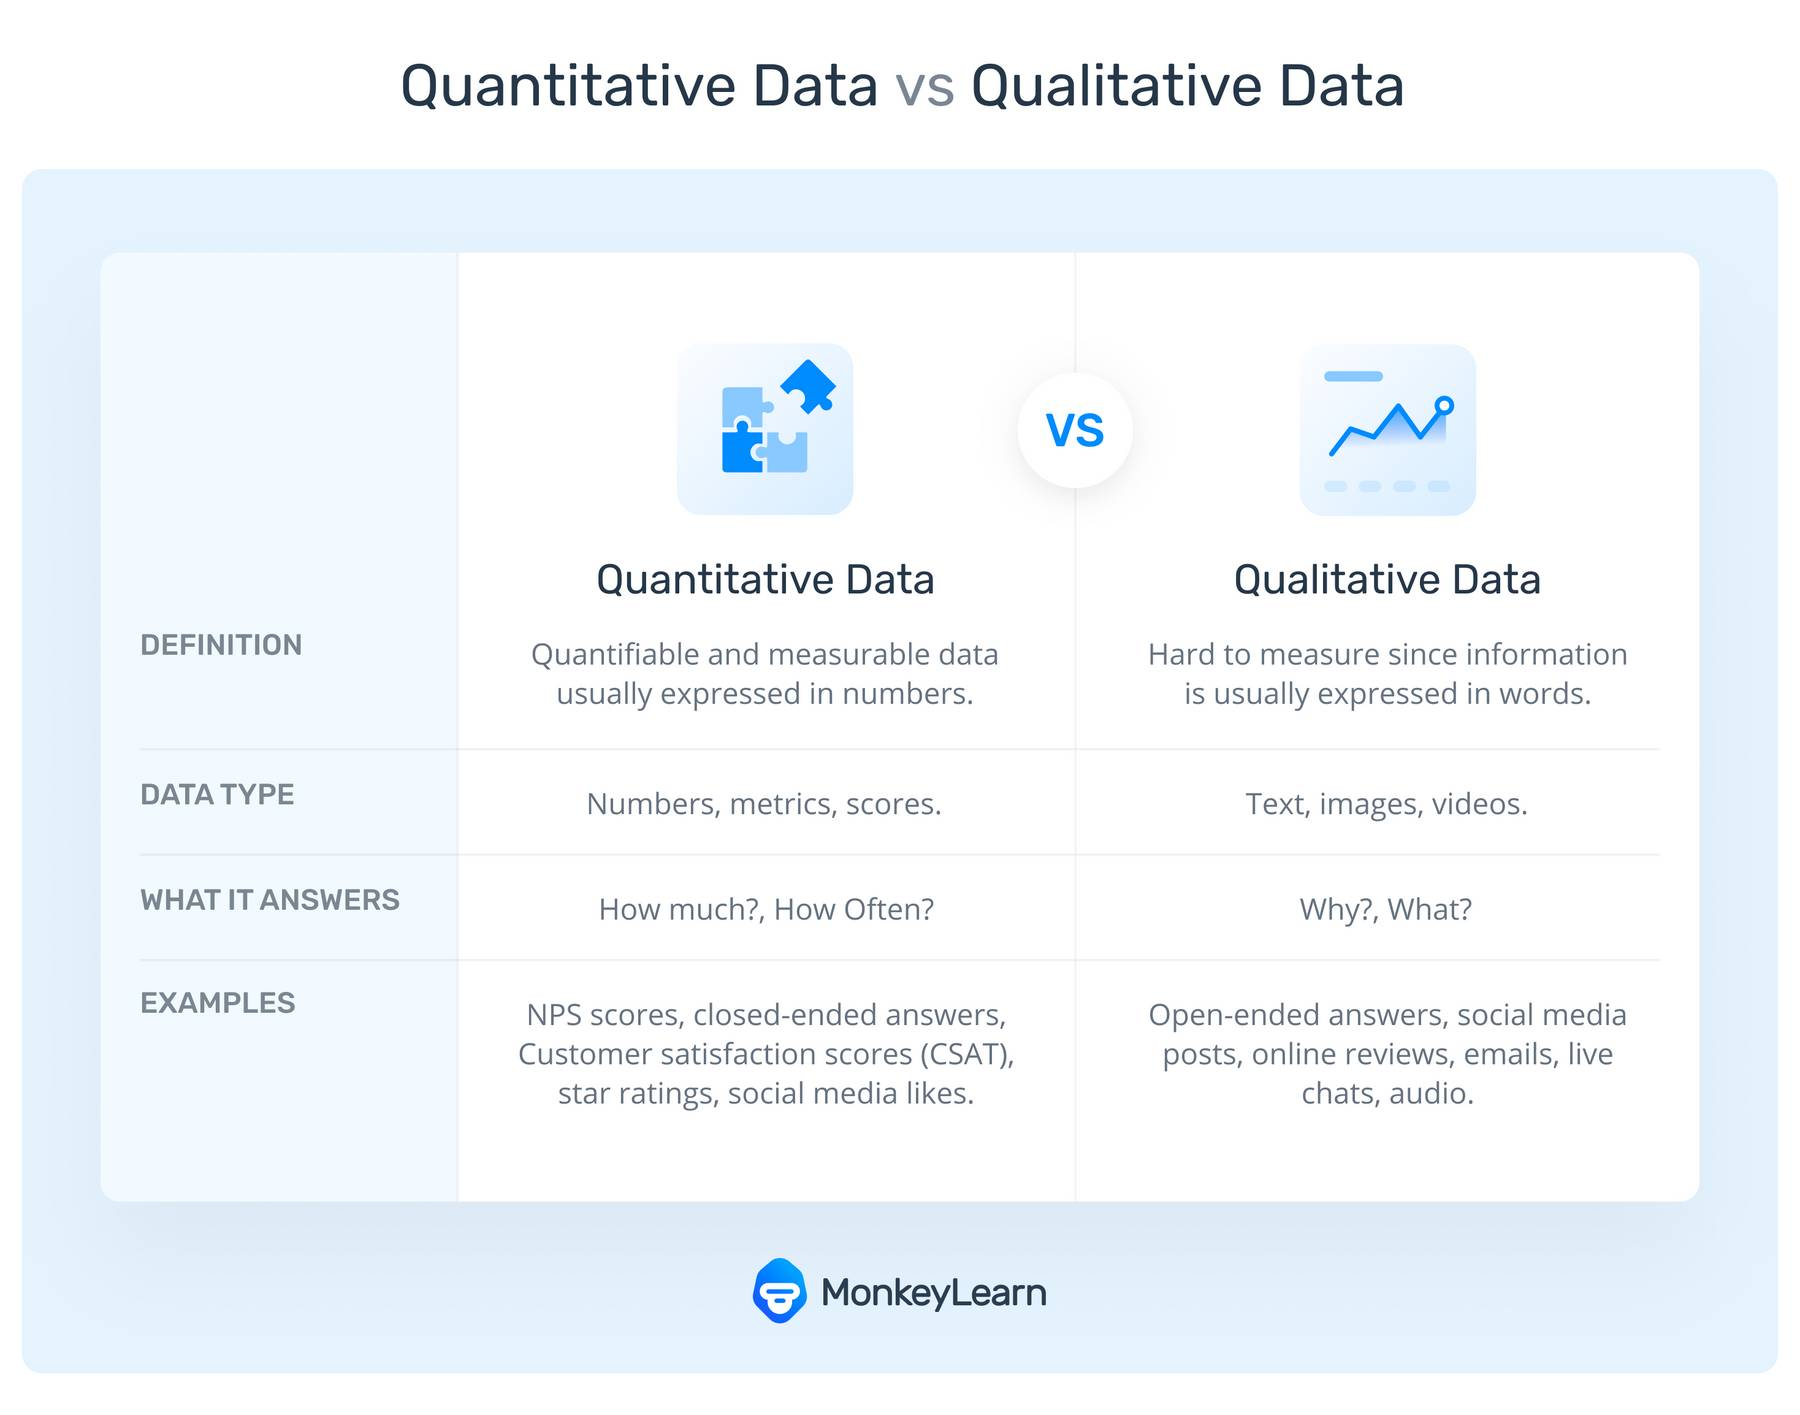 The differences between qualitative and quantitative data, including a definition, types of data, what it answers, and examples of both data types